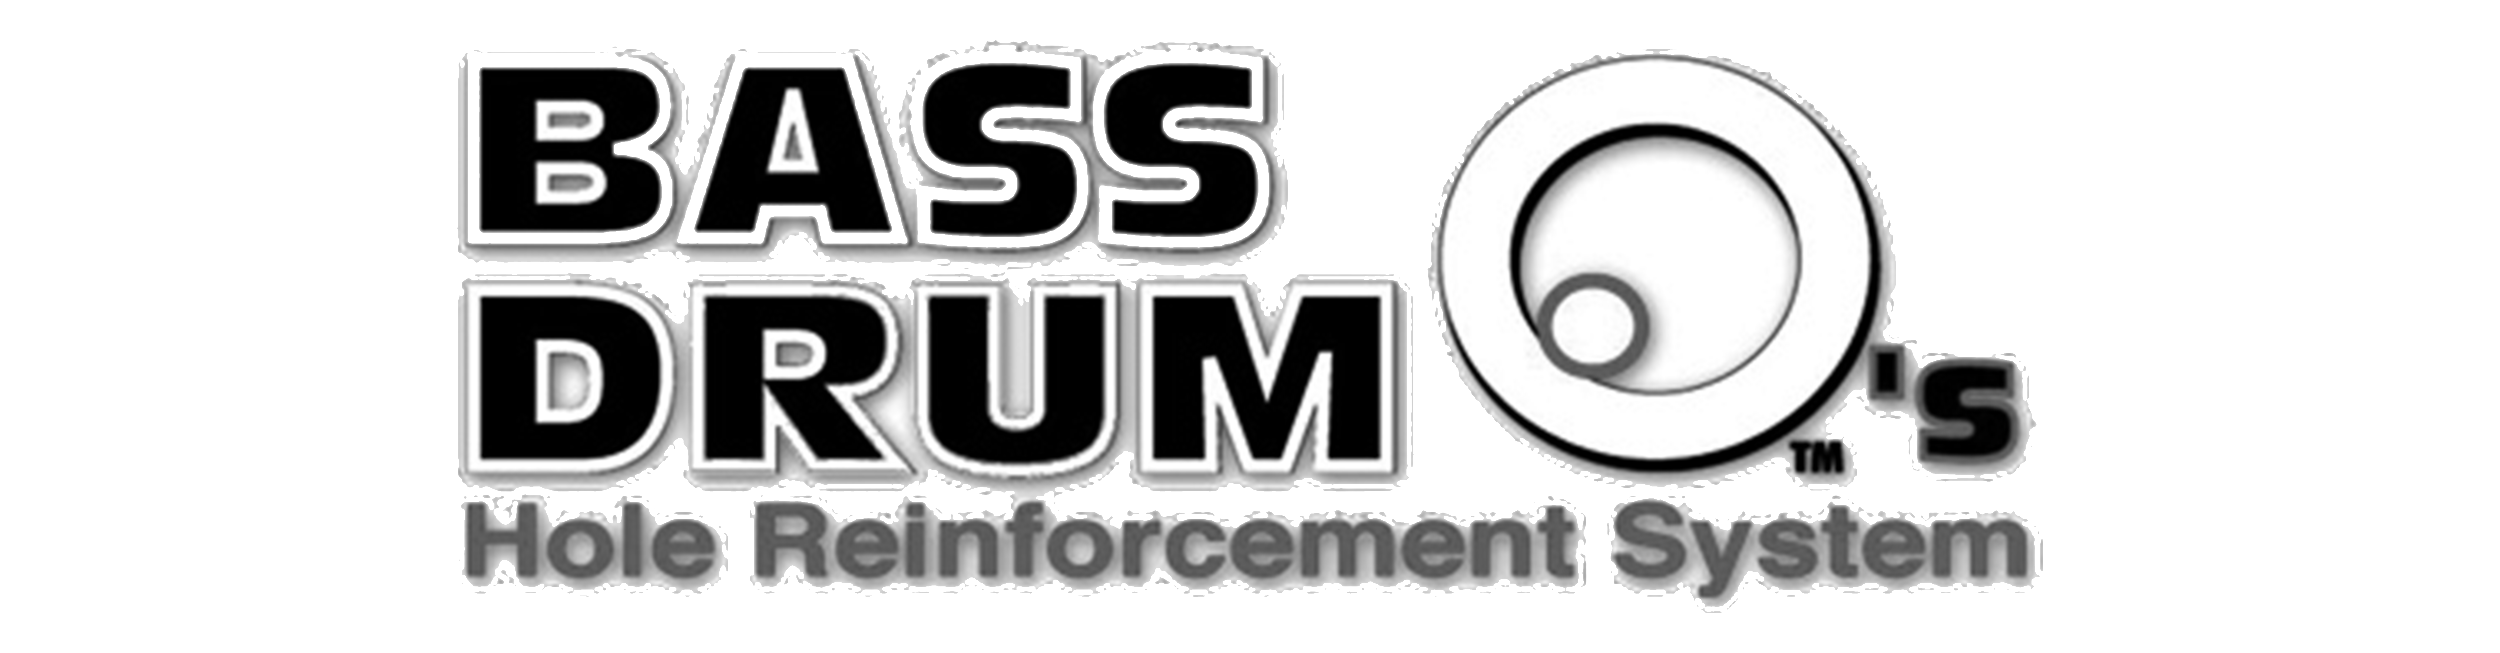 Productos - Bass Drum O's